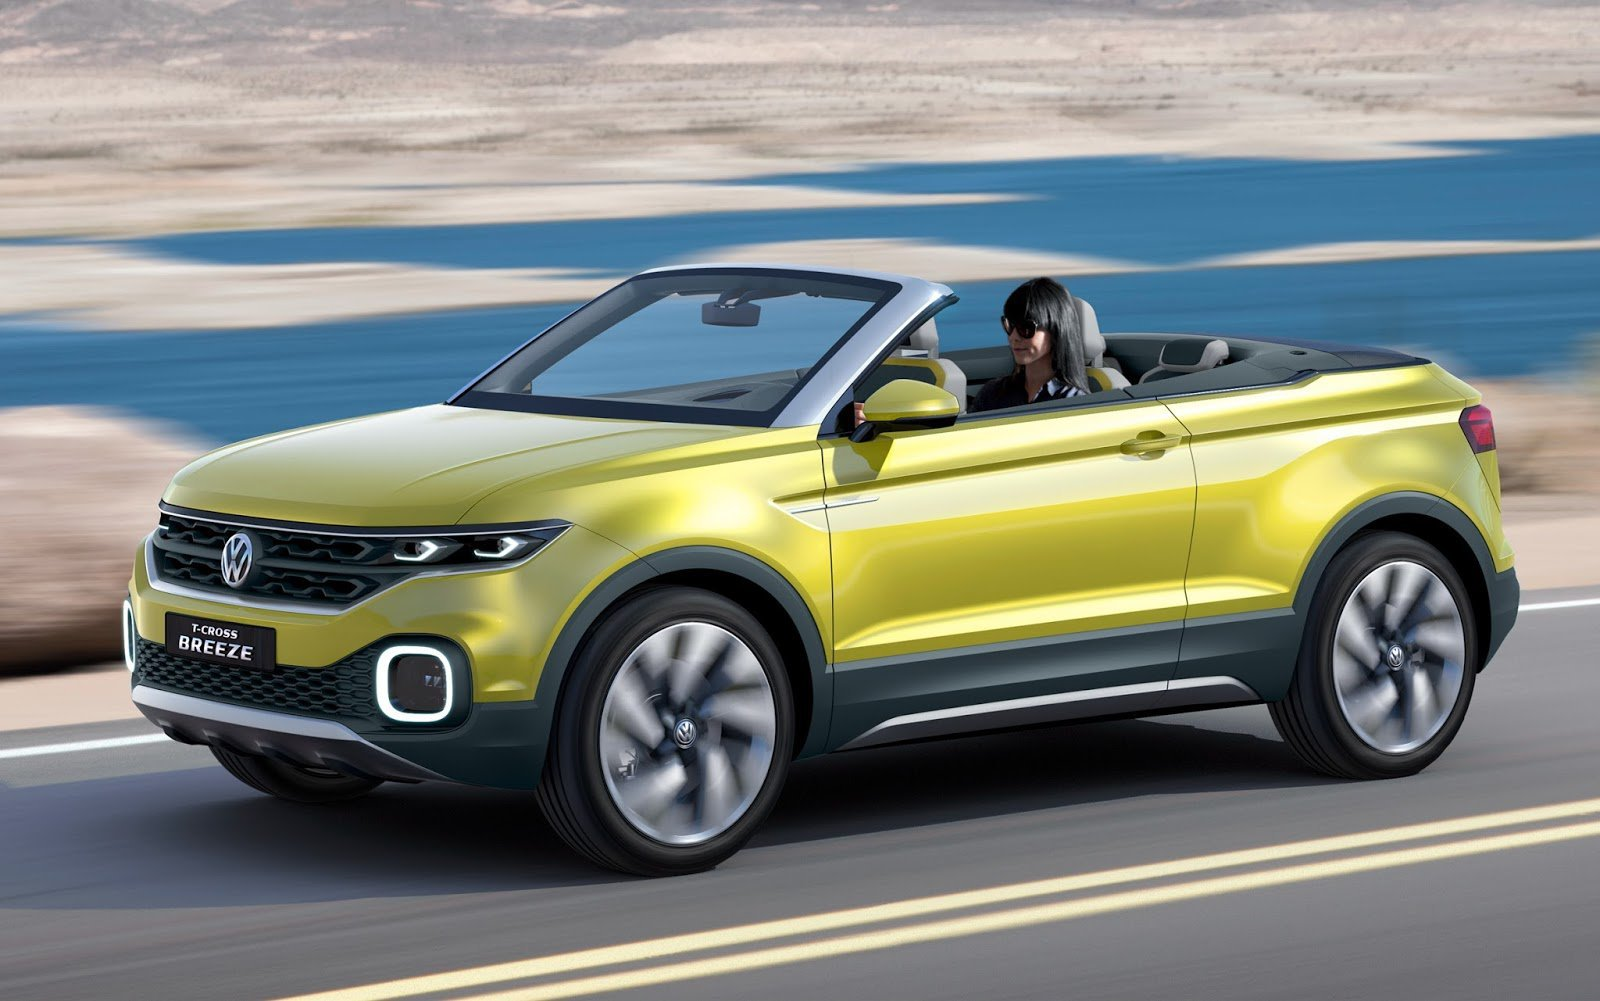 Volkswagen T-Class Breeze: hybrid convertible and crossover